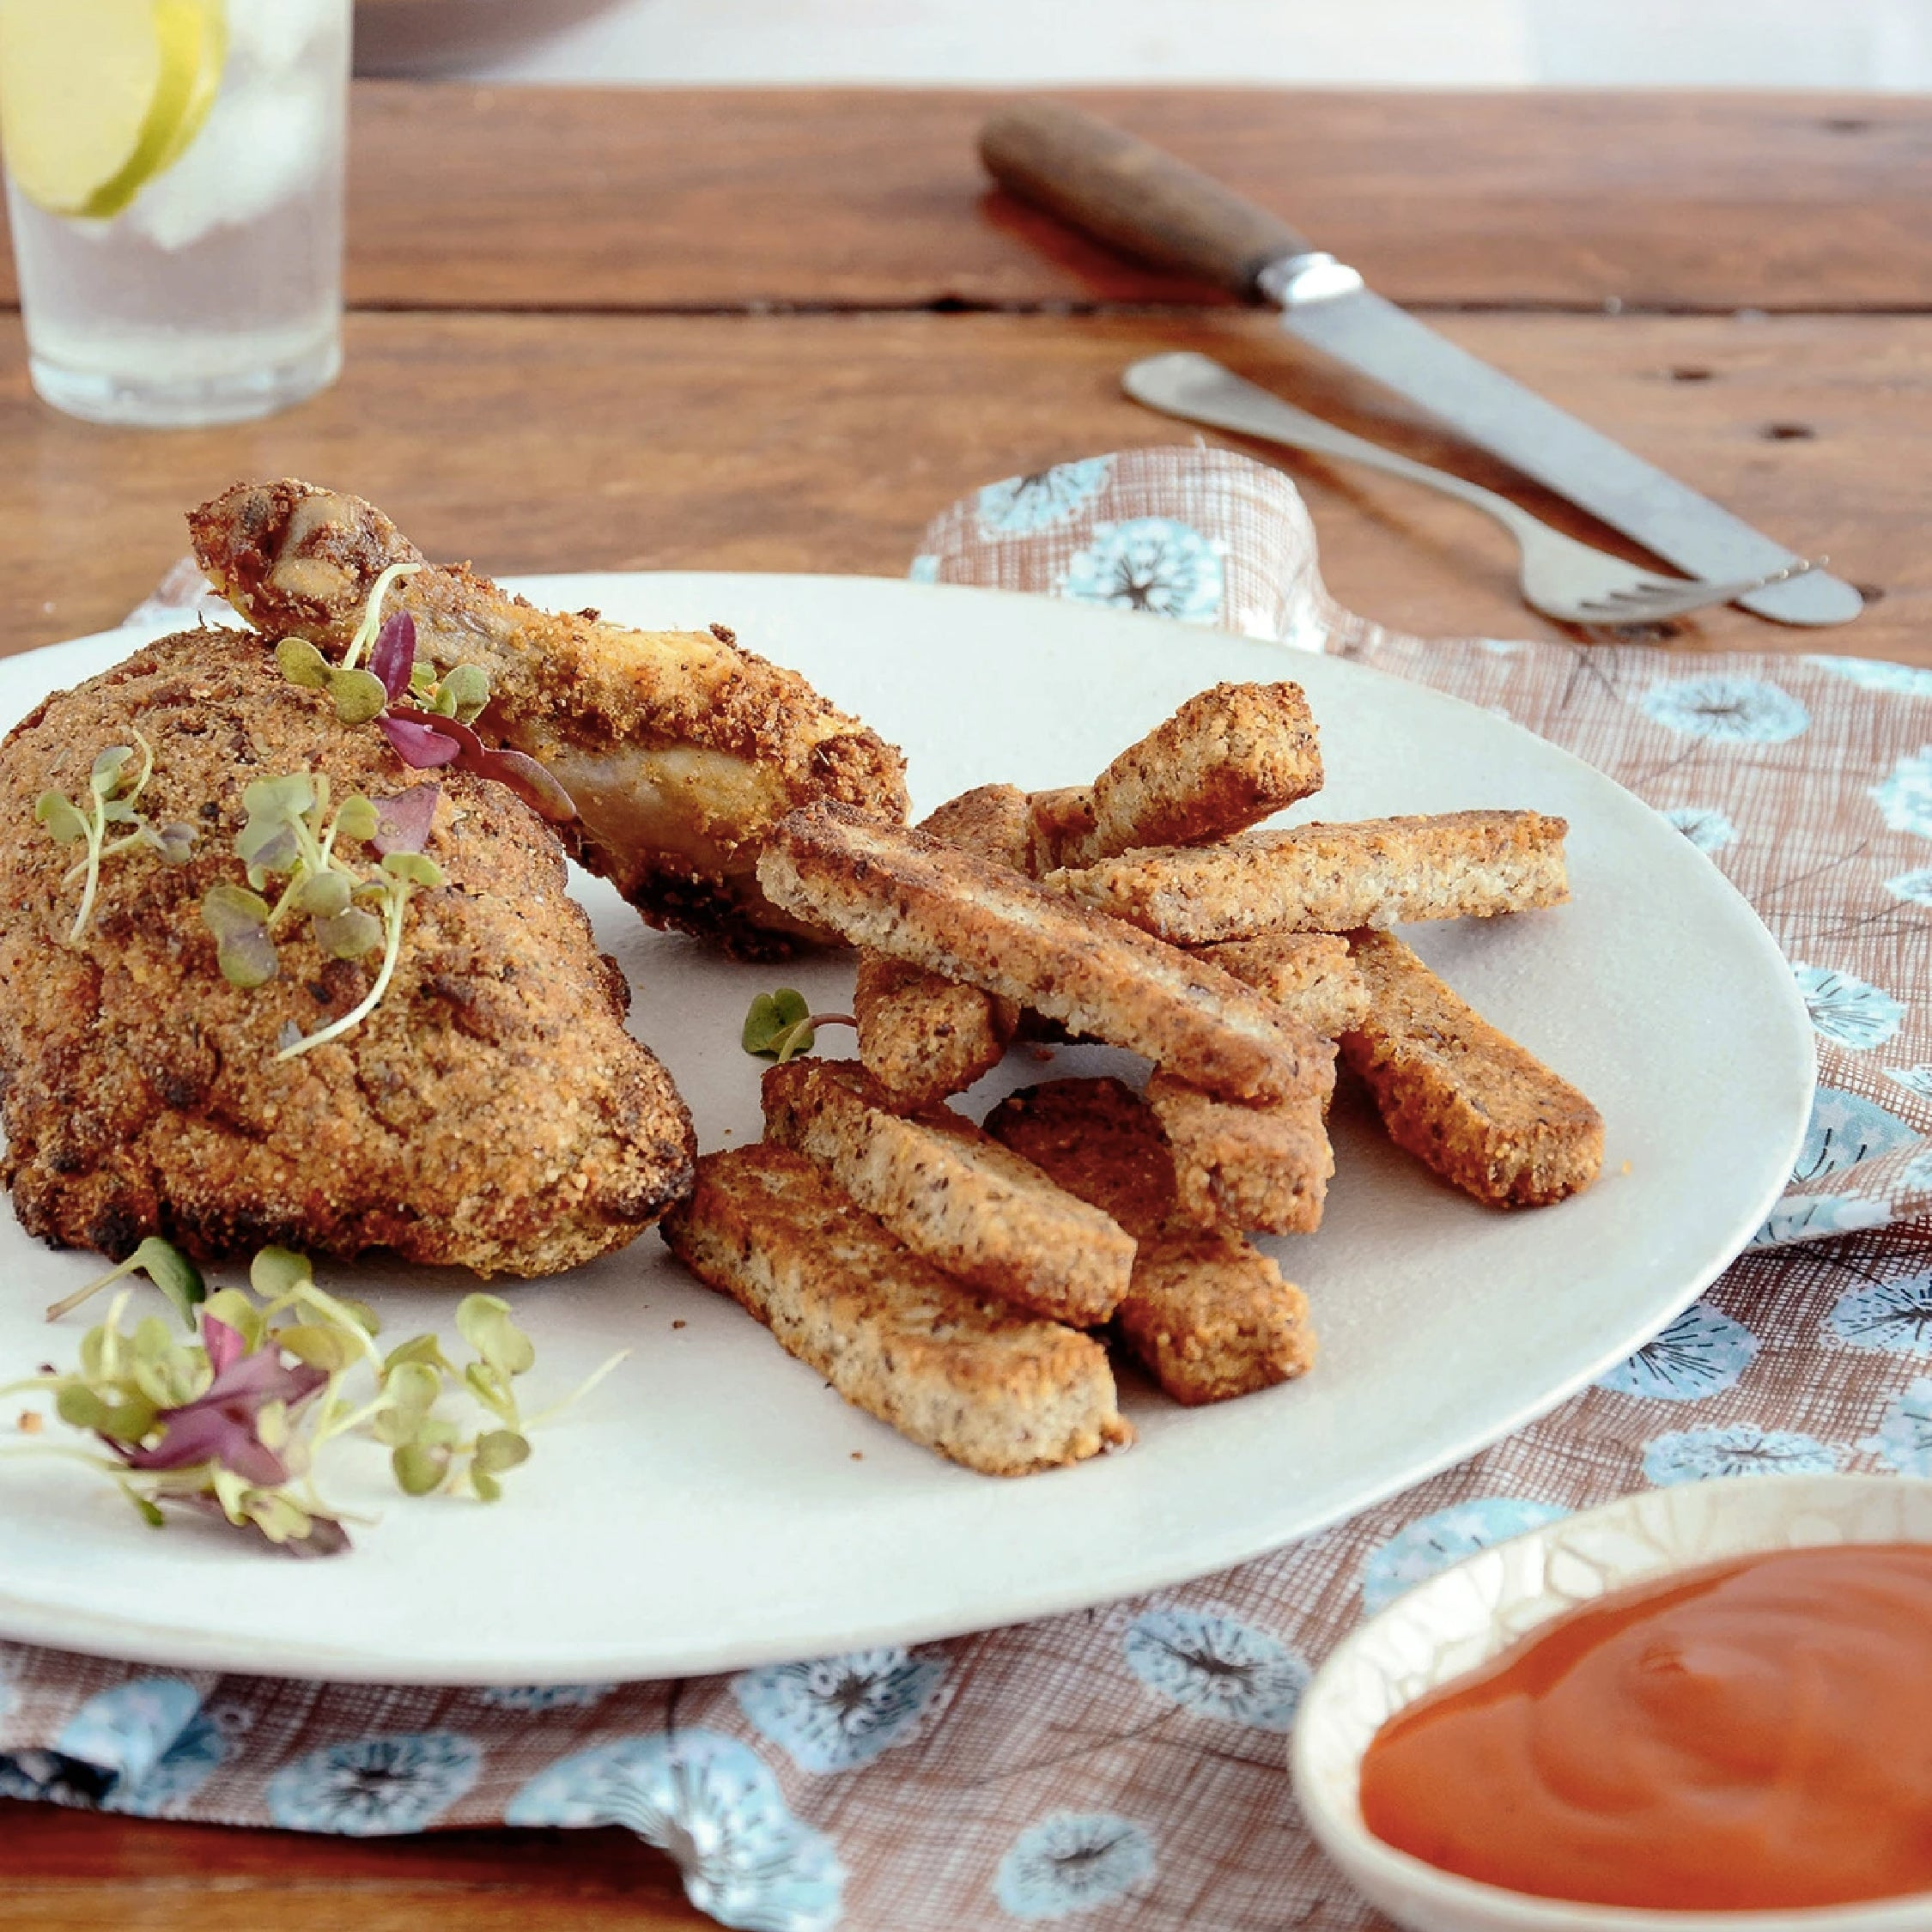 HEBA Crispy Crumbed Chicken and Chips